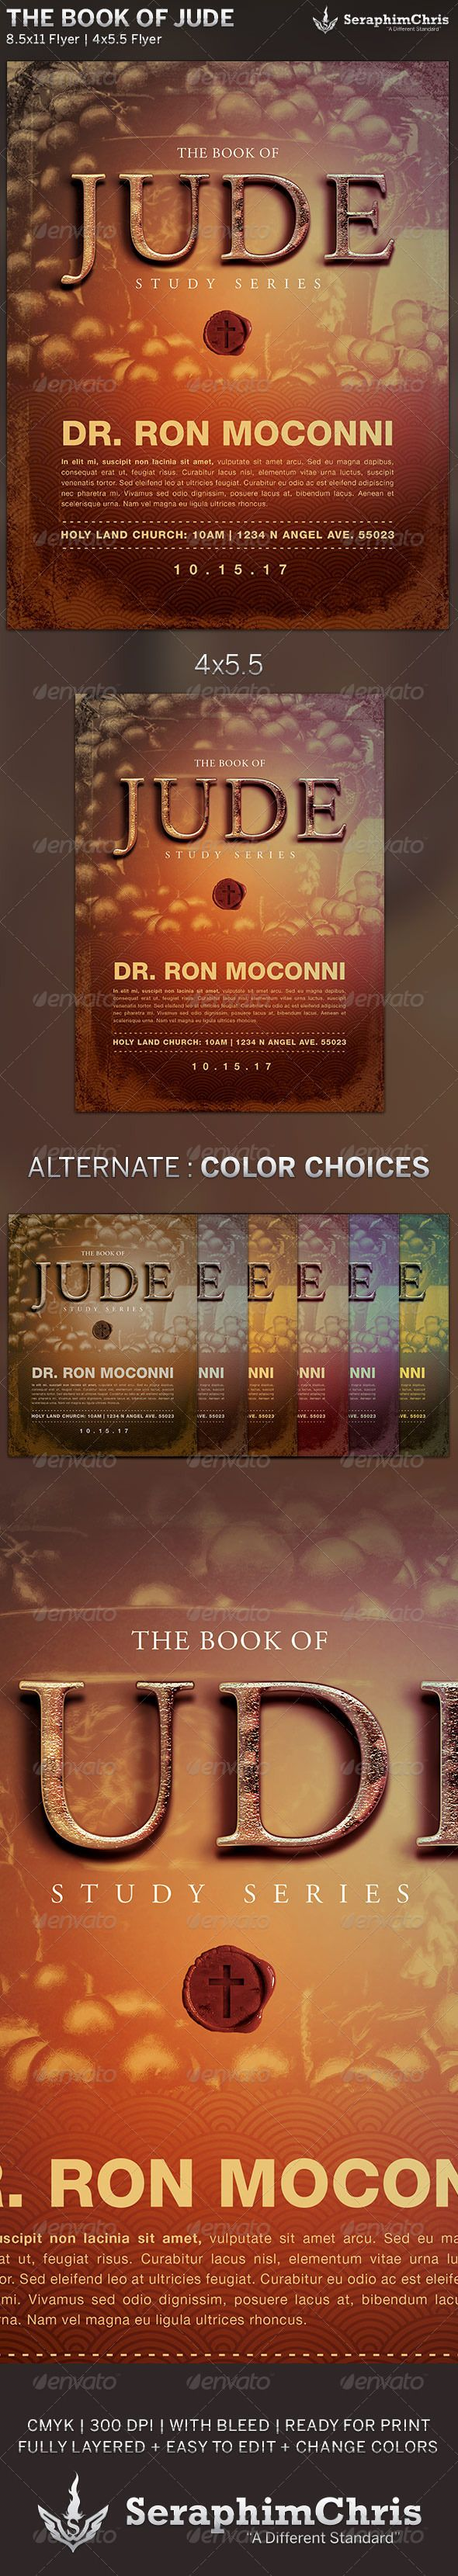 The Book of Jude: Church Flyer Template — Photoshop PSD #seraphimchris #magazine cover • Available here → https://graphicriver.net/item/the-book-of-jude-church-flyer-template/5891277?ref=pxcr